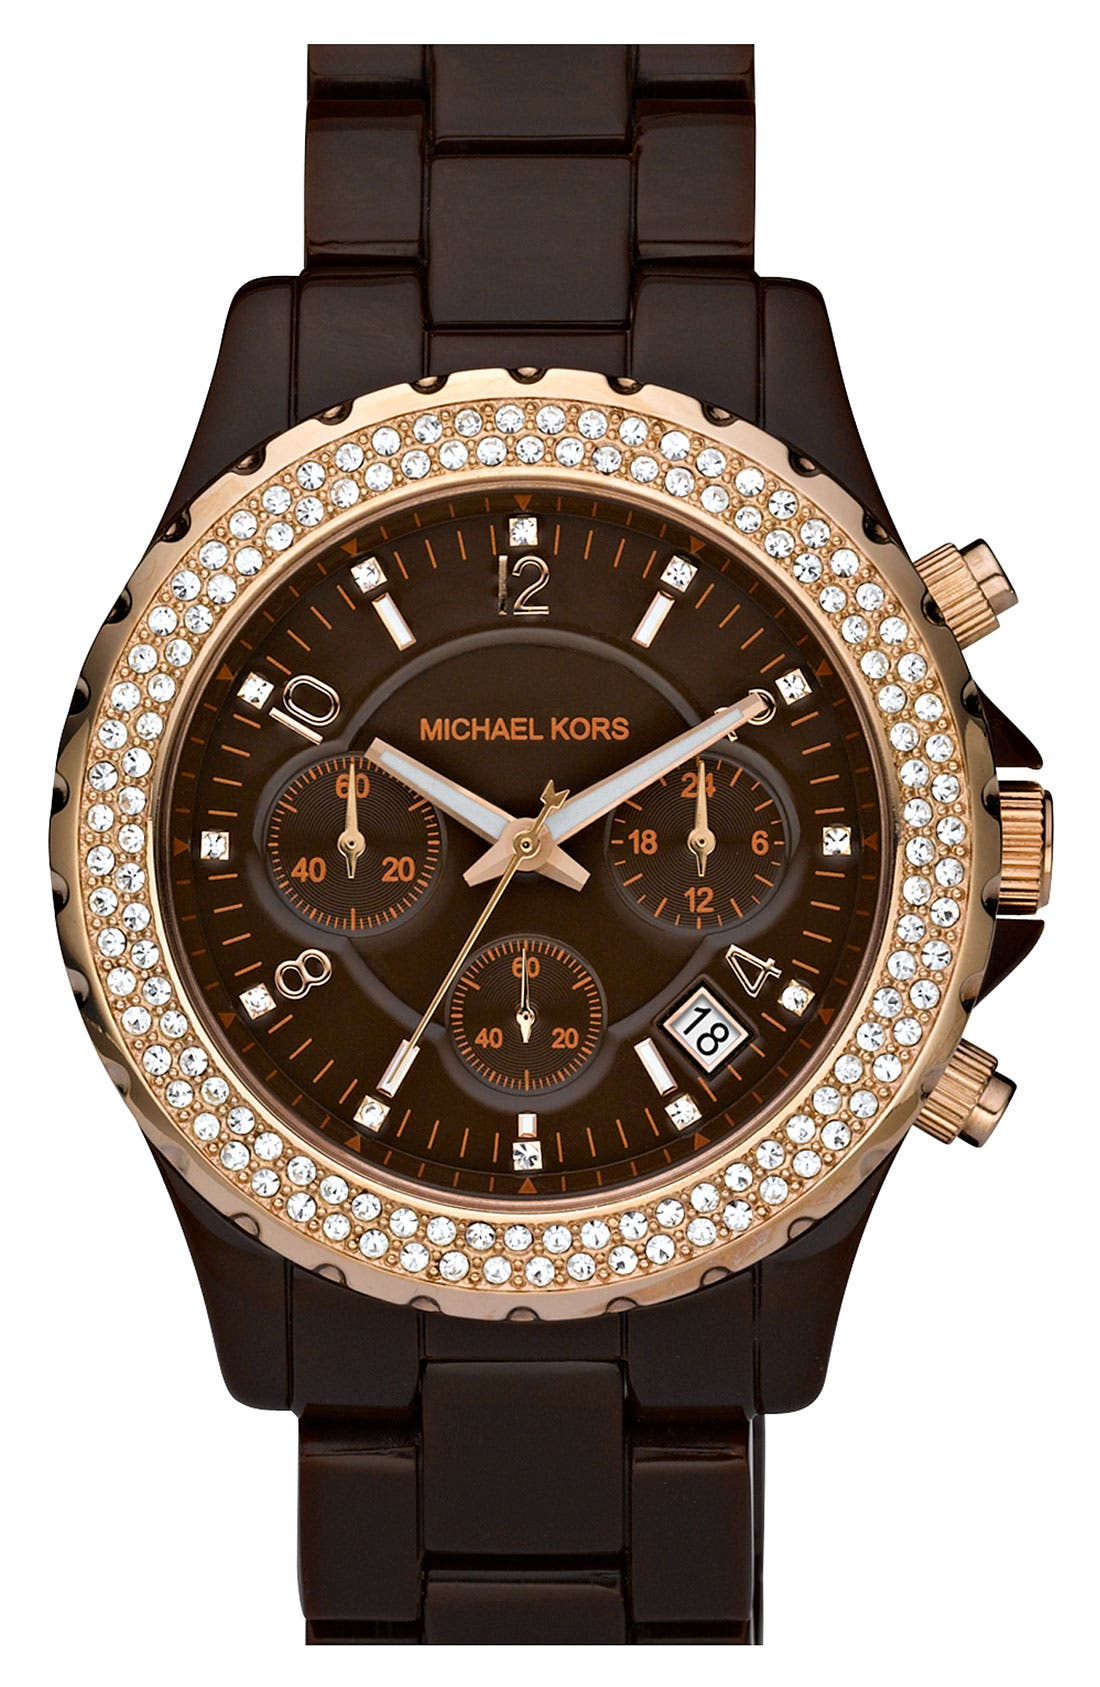 Main Image - Michael Kors 'Madison' Resin & Crystal Watch